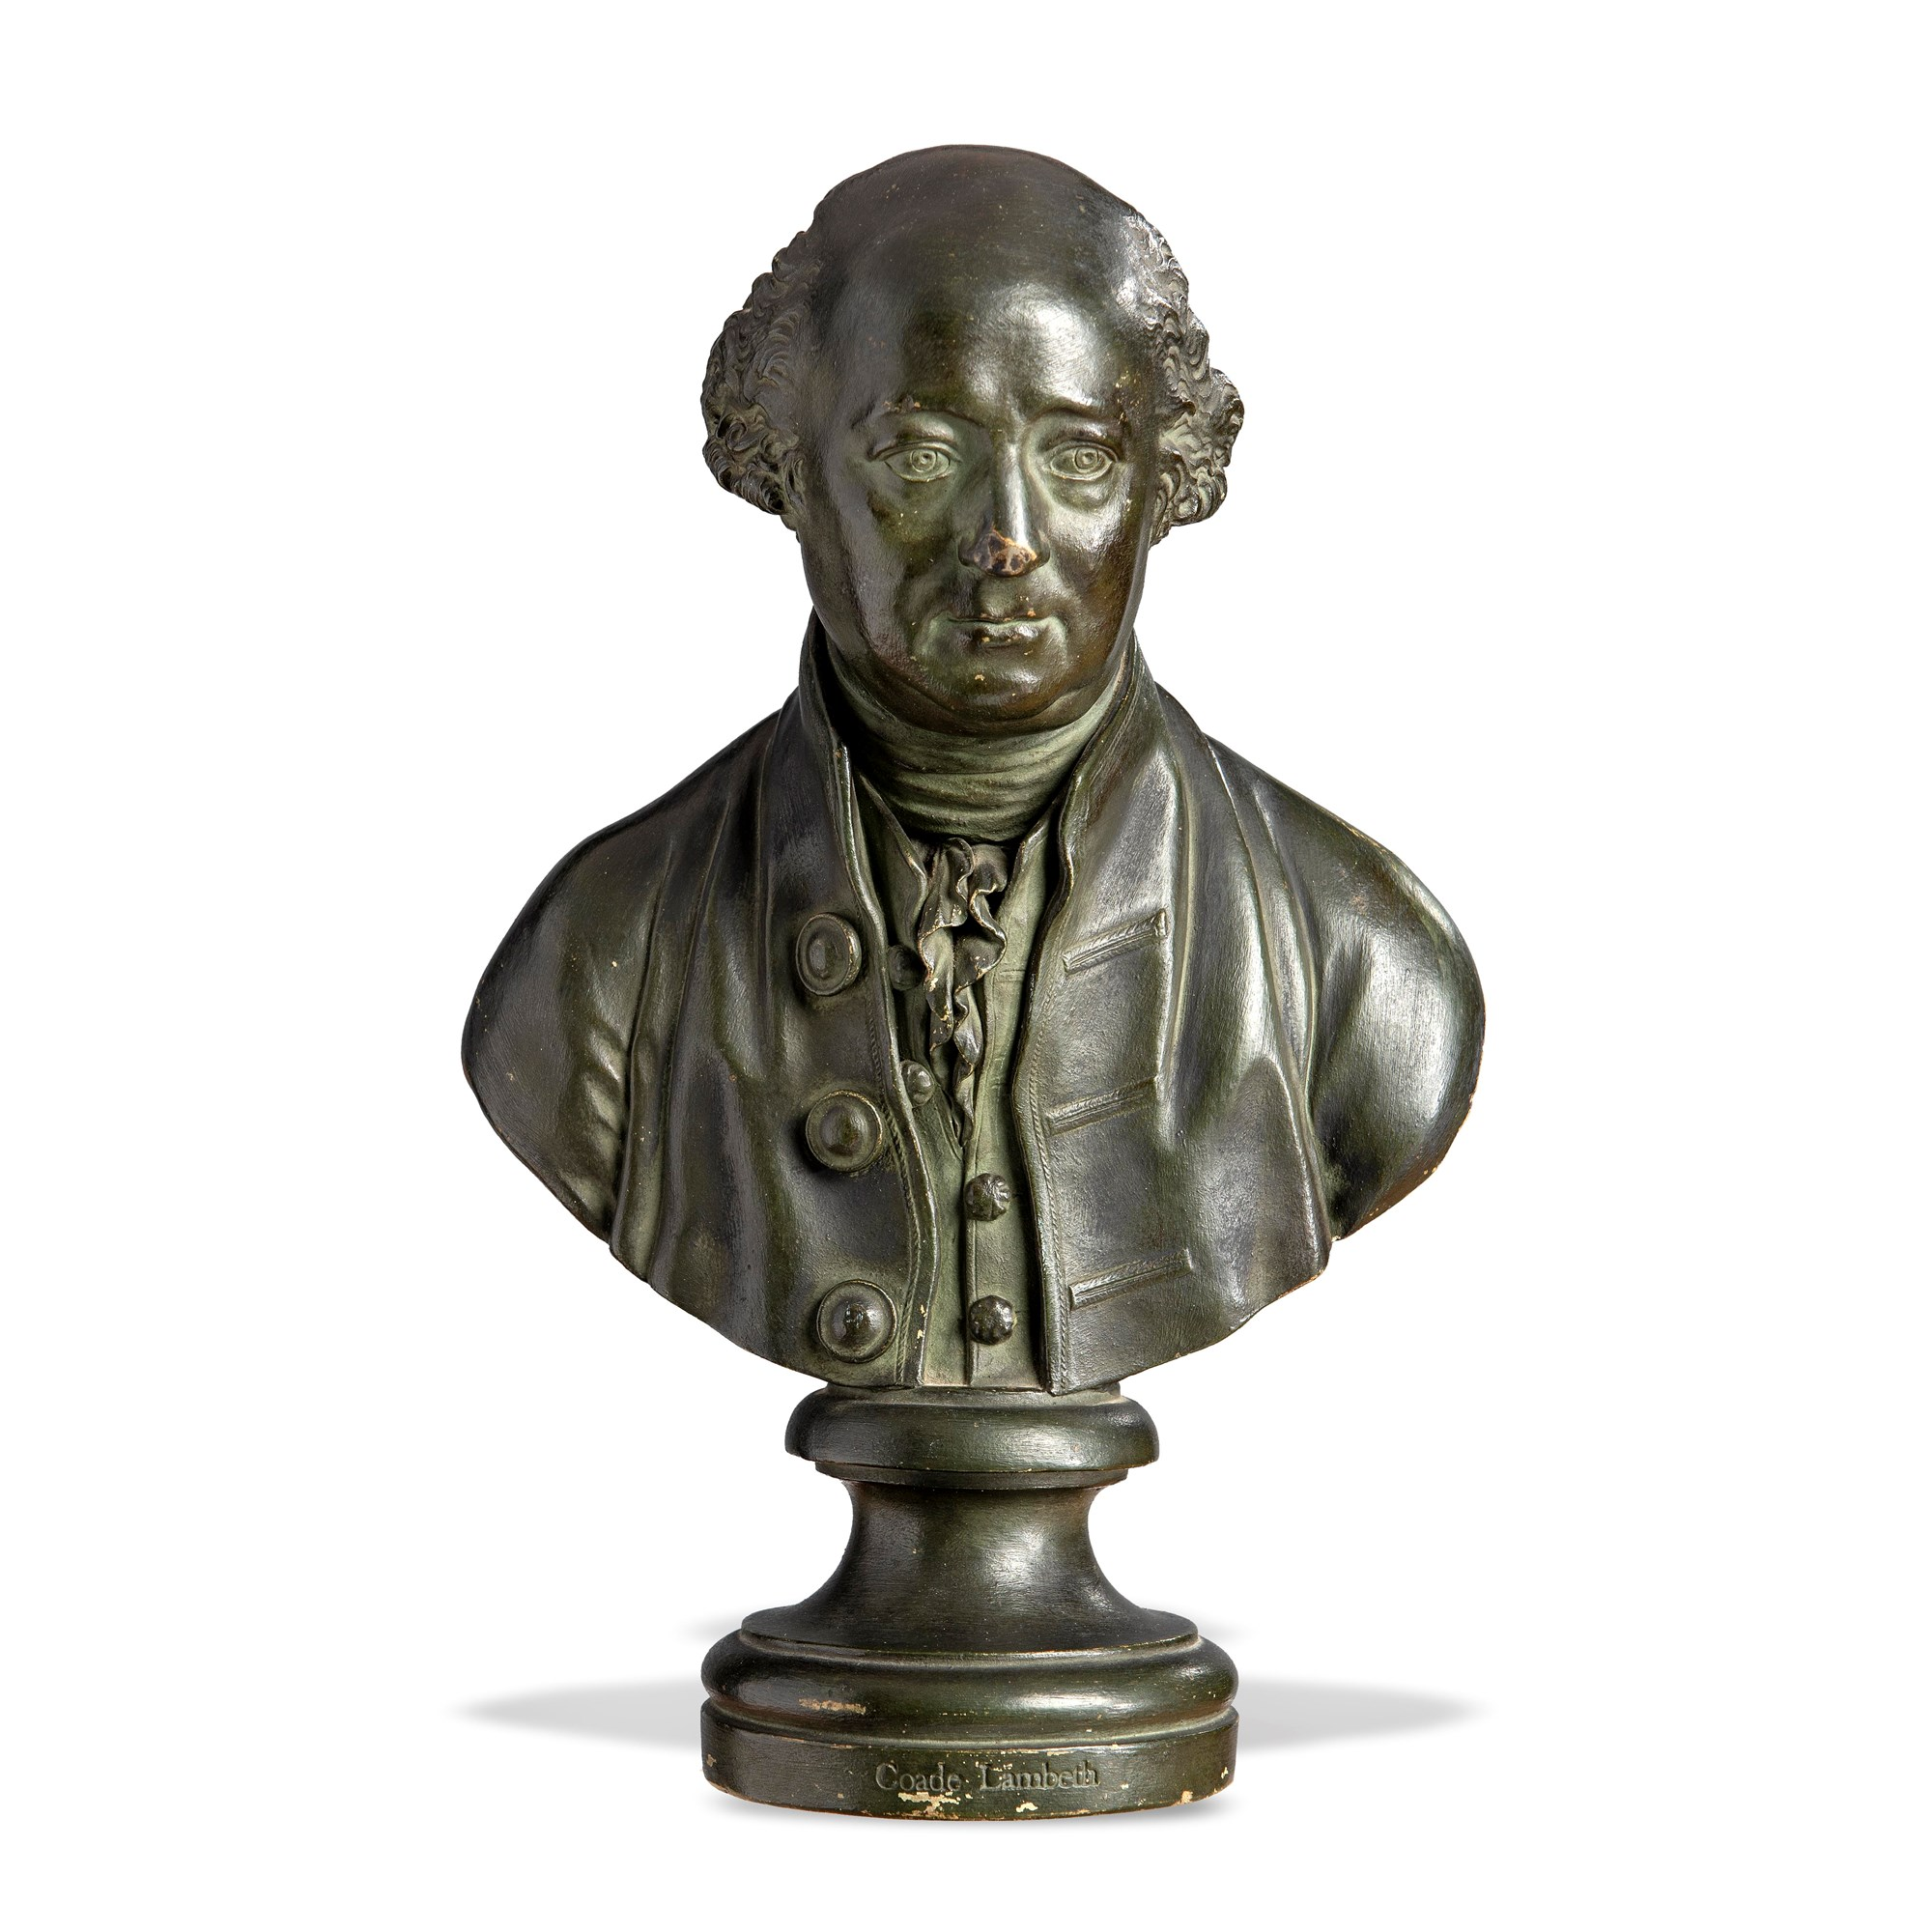 Lot 90 March - A probably unique Coade stone bust of Gerard de Visme, signed and dated 1793.